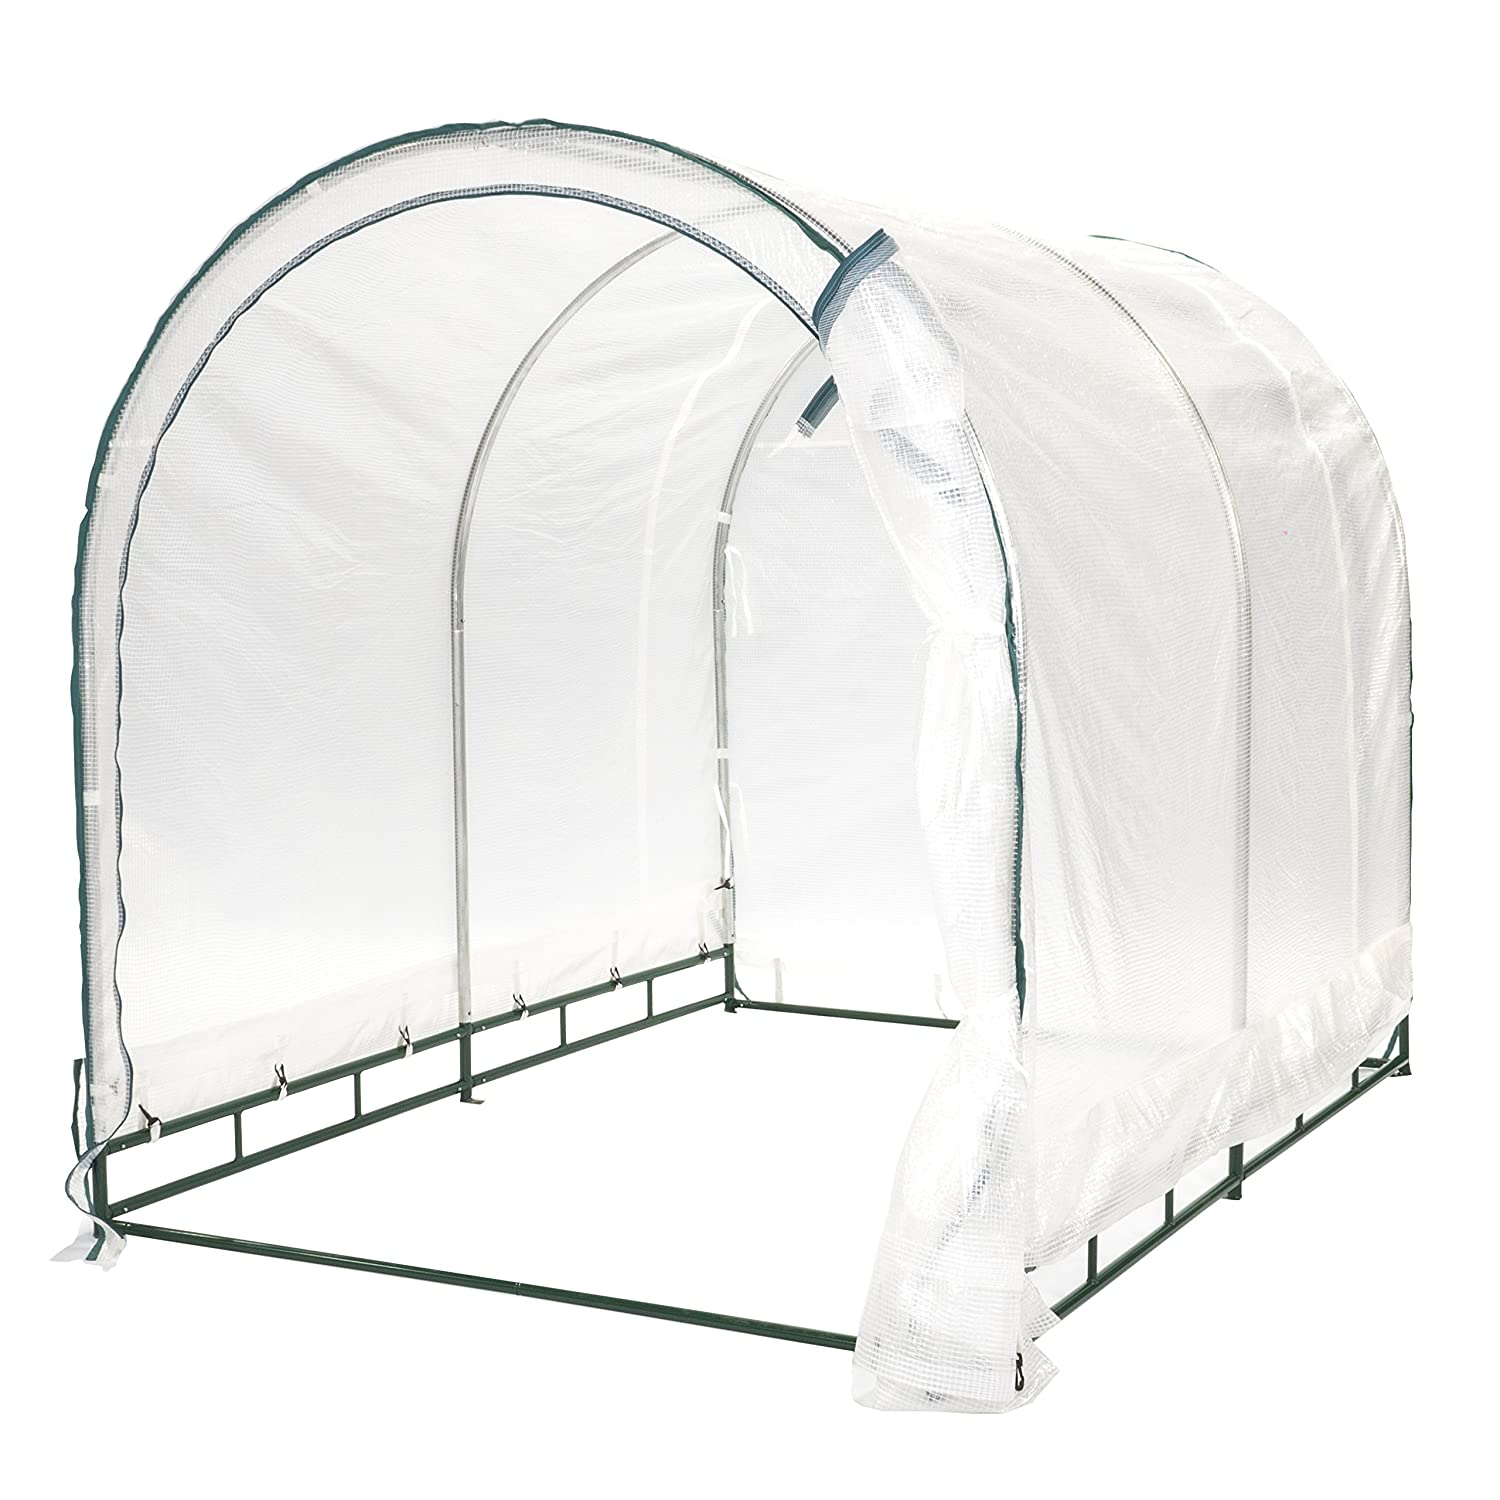 TrueShelter GH68 6 x 8 Green House, Large, White Silver